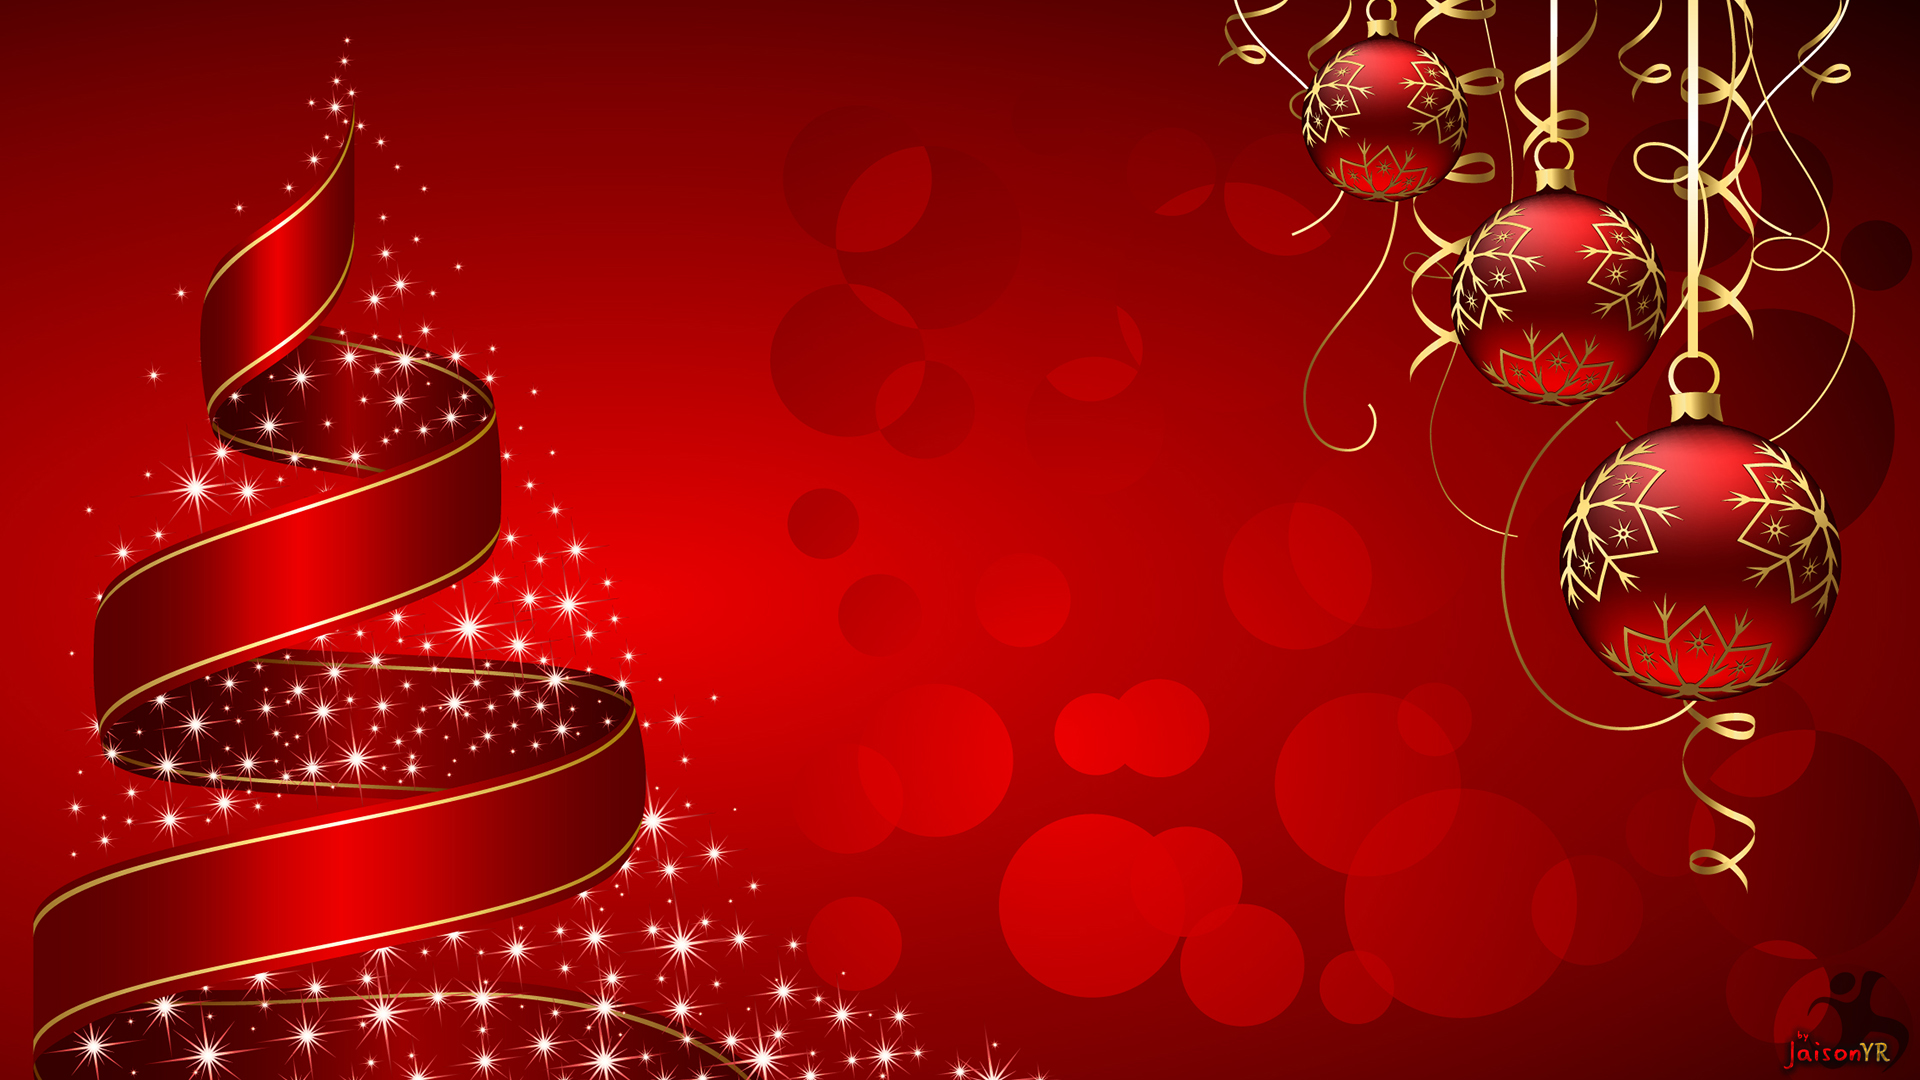 77] Christmas Background Pictures on WallpaperSafari 1920x1080